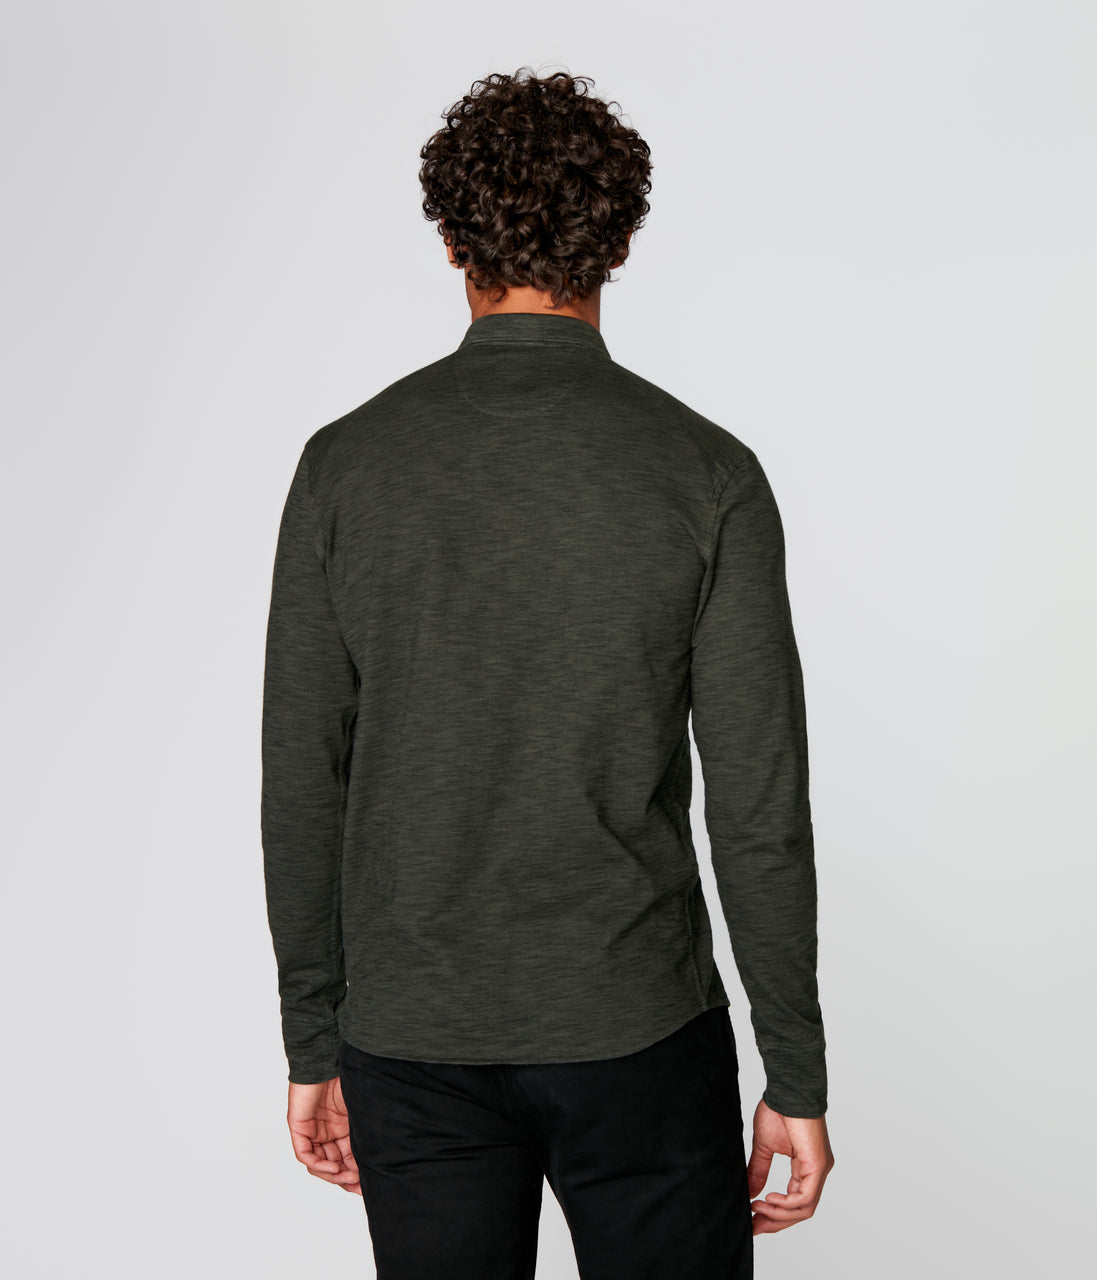 On-Point Soft Shirt in Black Marl Soft Slub - Rifle Green Dark - Good Man Brand - On-Point Soft Shirt in Black Marl Soft Slub - Rifle Green Dark